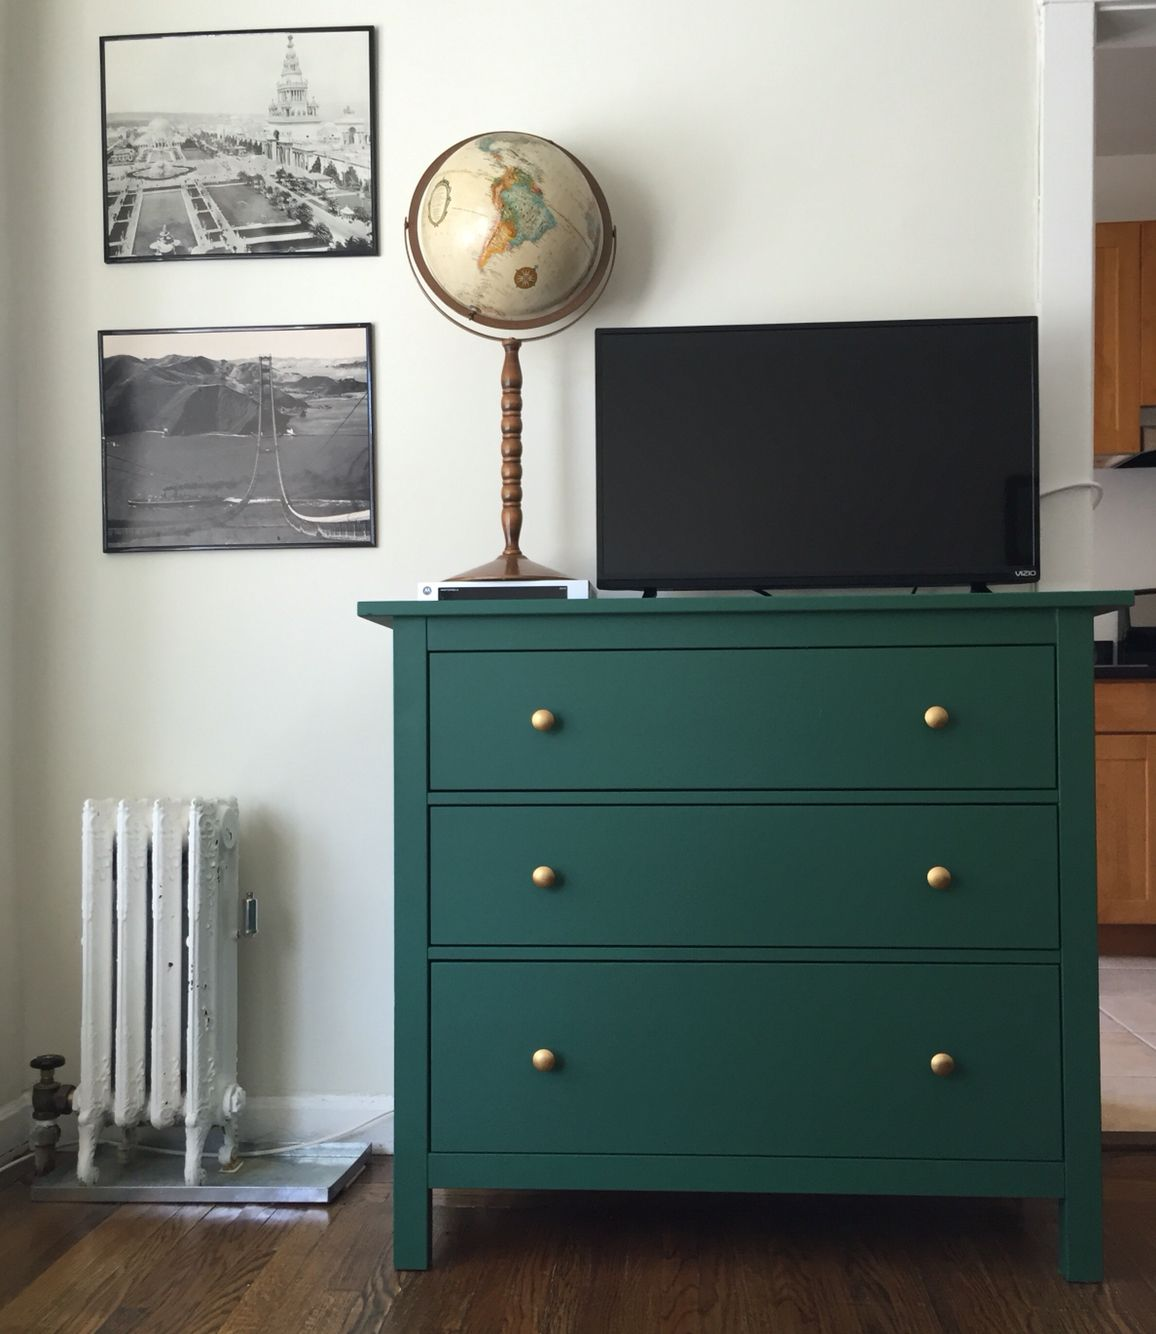 ikea hemnes dresser hack chalkboard green home ikea. Black Bedroom Furniture Sets. Home Design Ideas